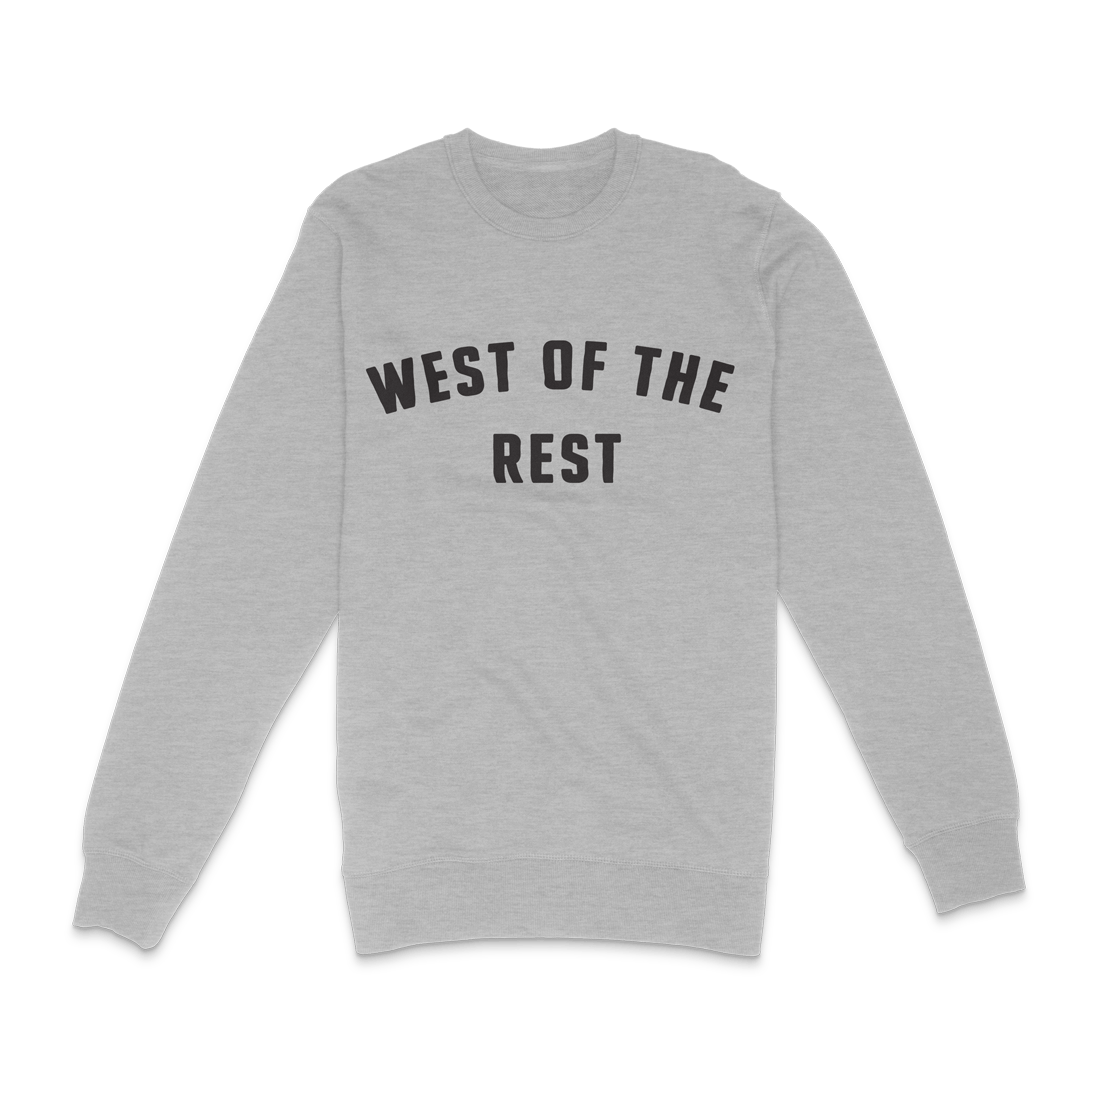 Freo Goods Co 'West Of The Rest' Sweater · Mens in Grey Marle. Compendium Design Store, Fremantle. AfterPay, ZipPay accepted.